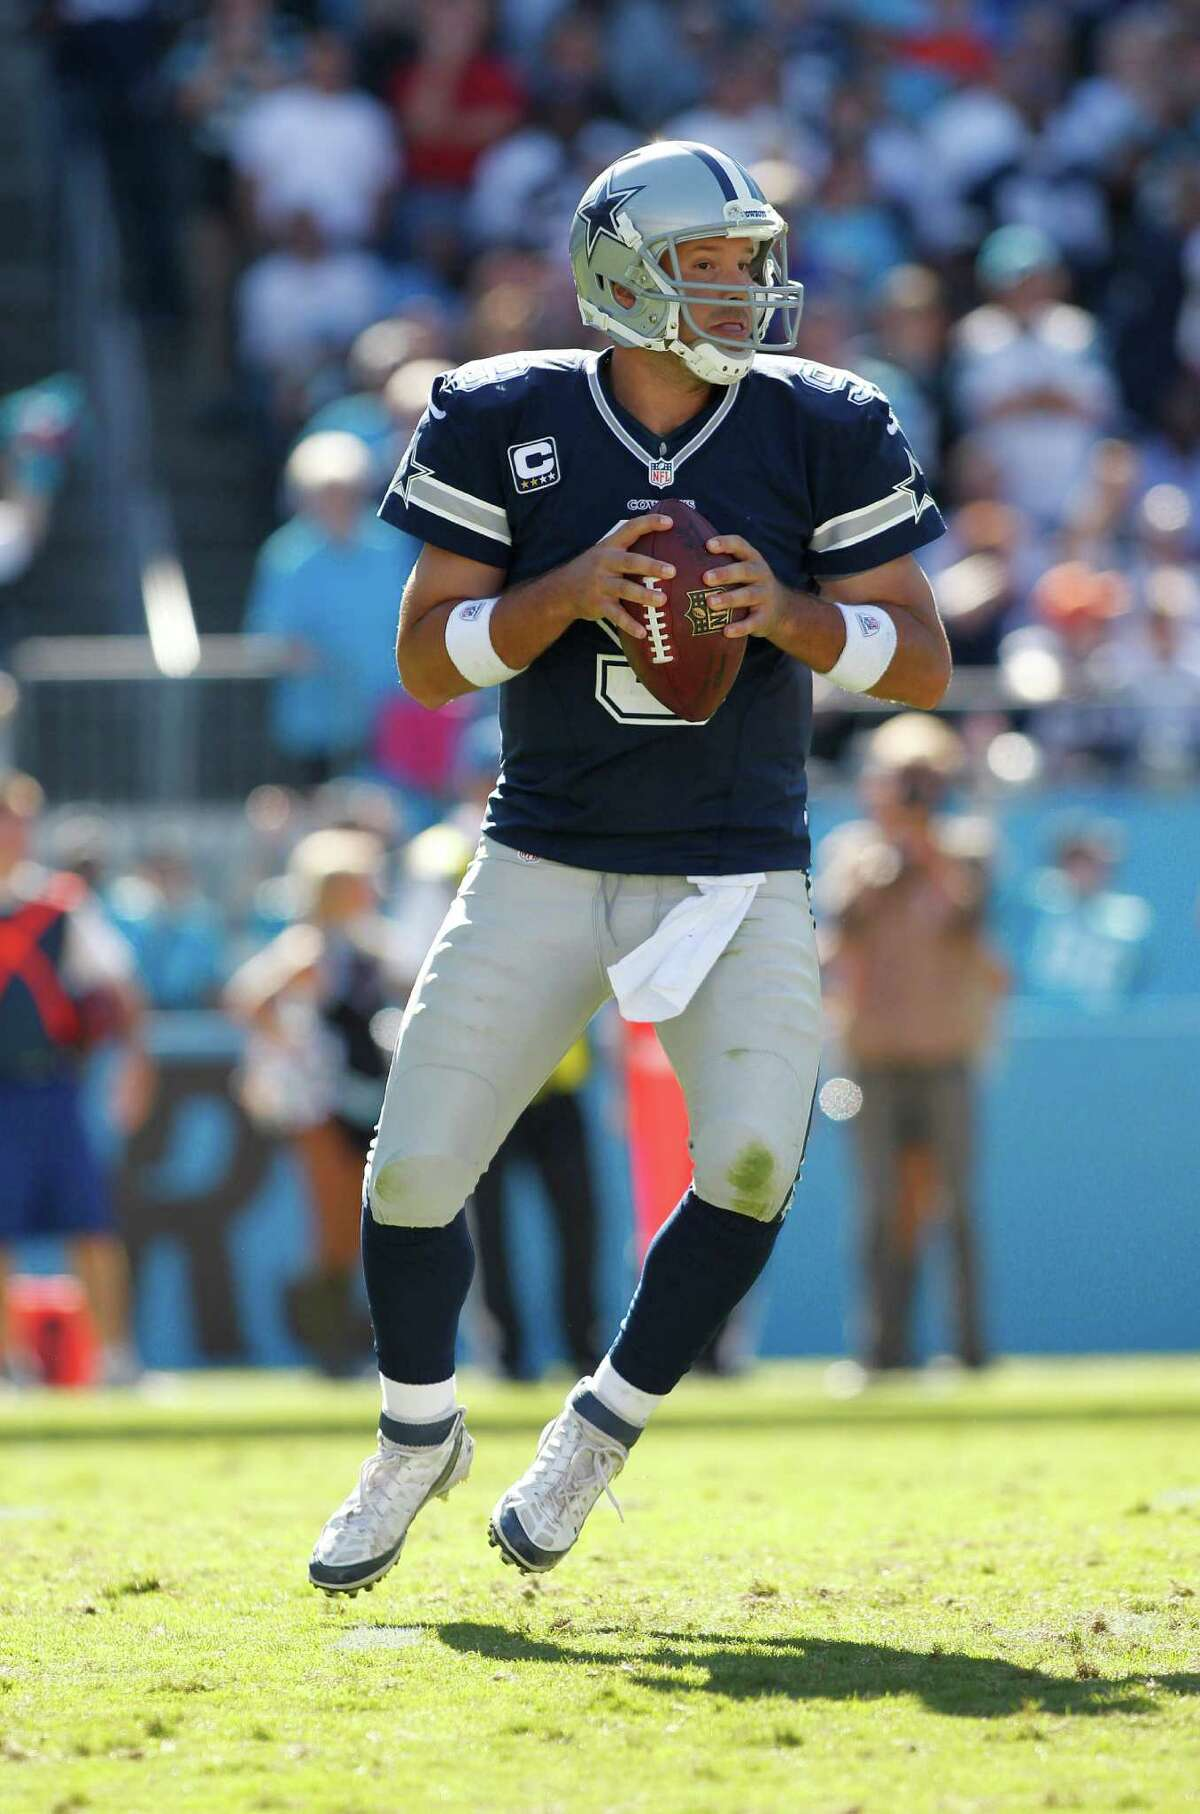 Dallas Cowboys quarterback Tony Romo (9) works against the Carolina Panthers during the second half of an NFL football game, Sunday, Oct. 21, 2012, in Charlotte, N.C. (AP Photo/Bob Leverone)